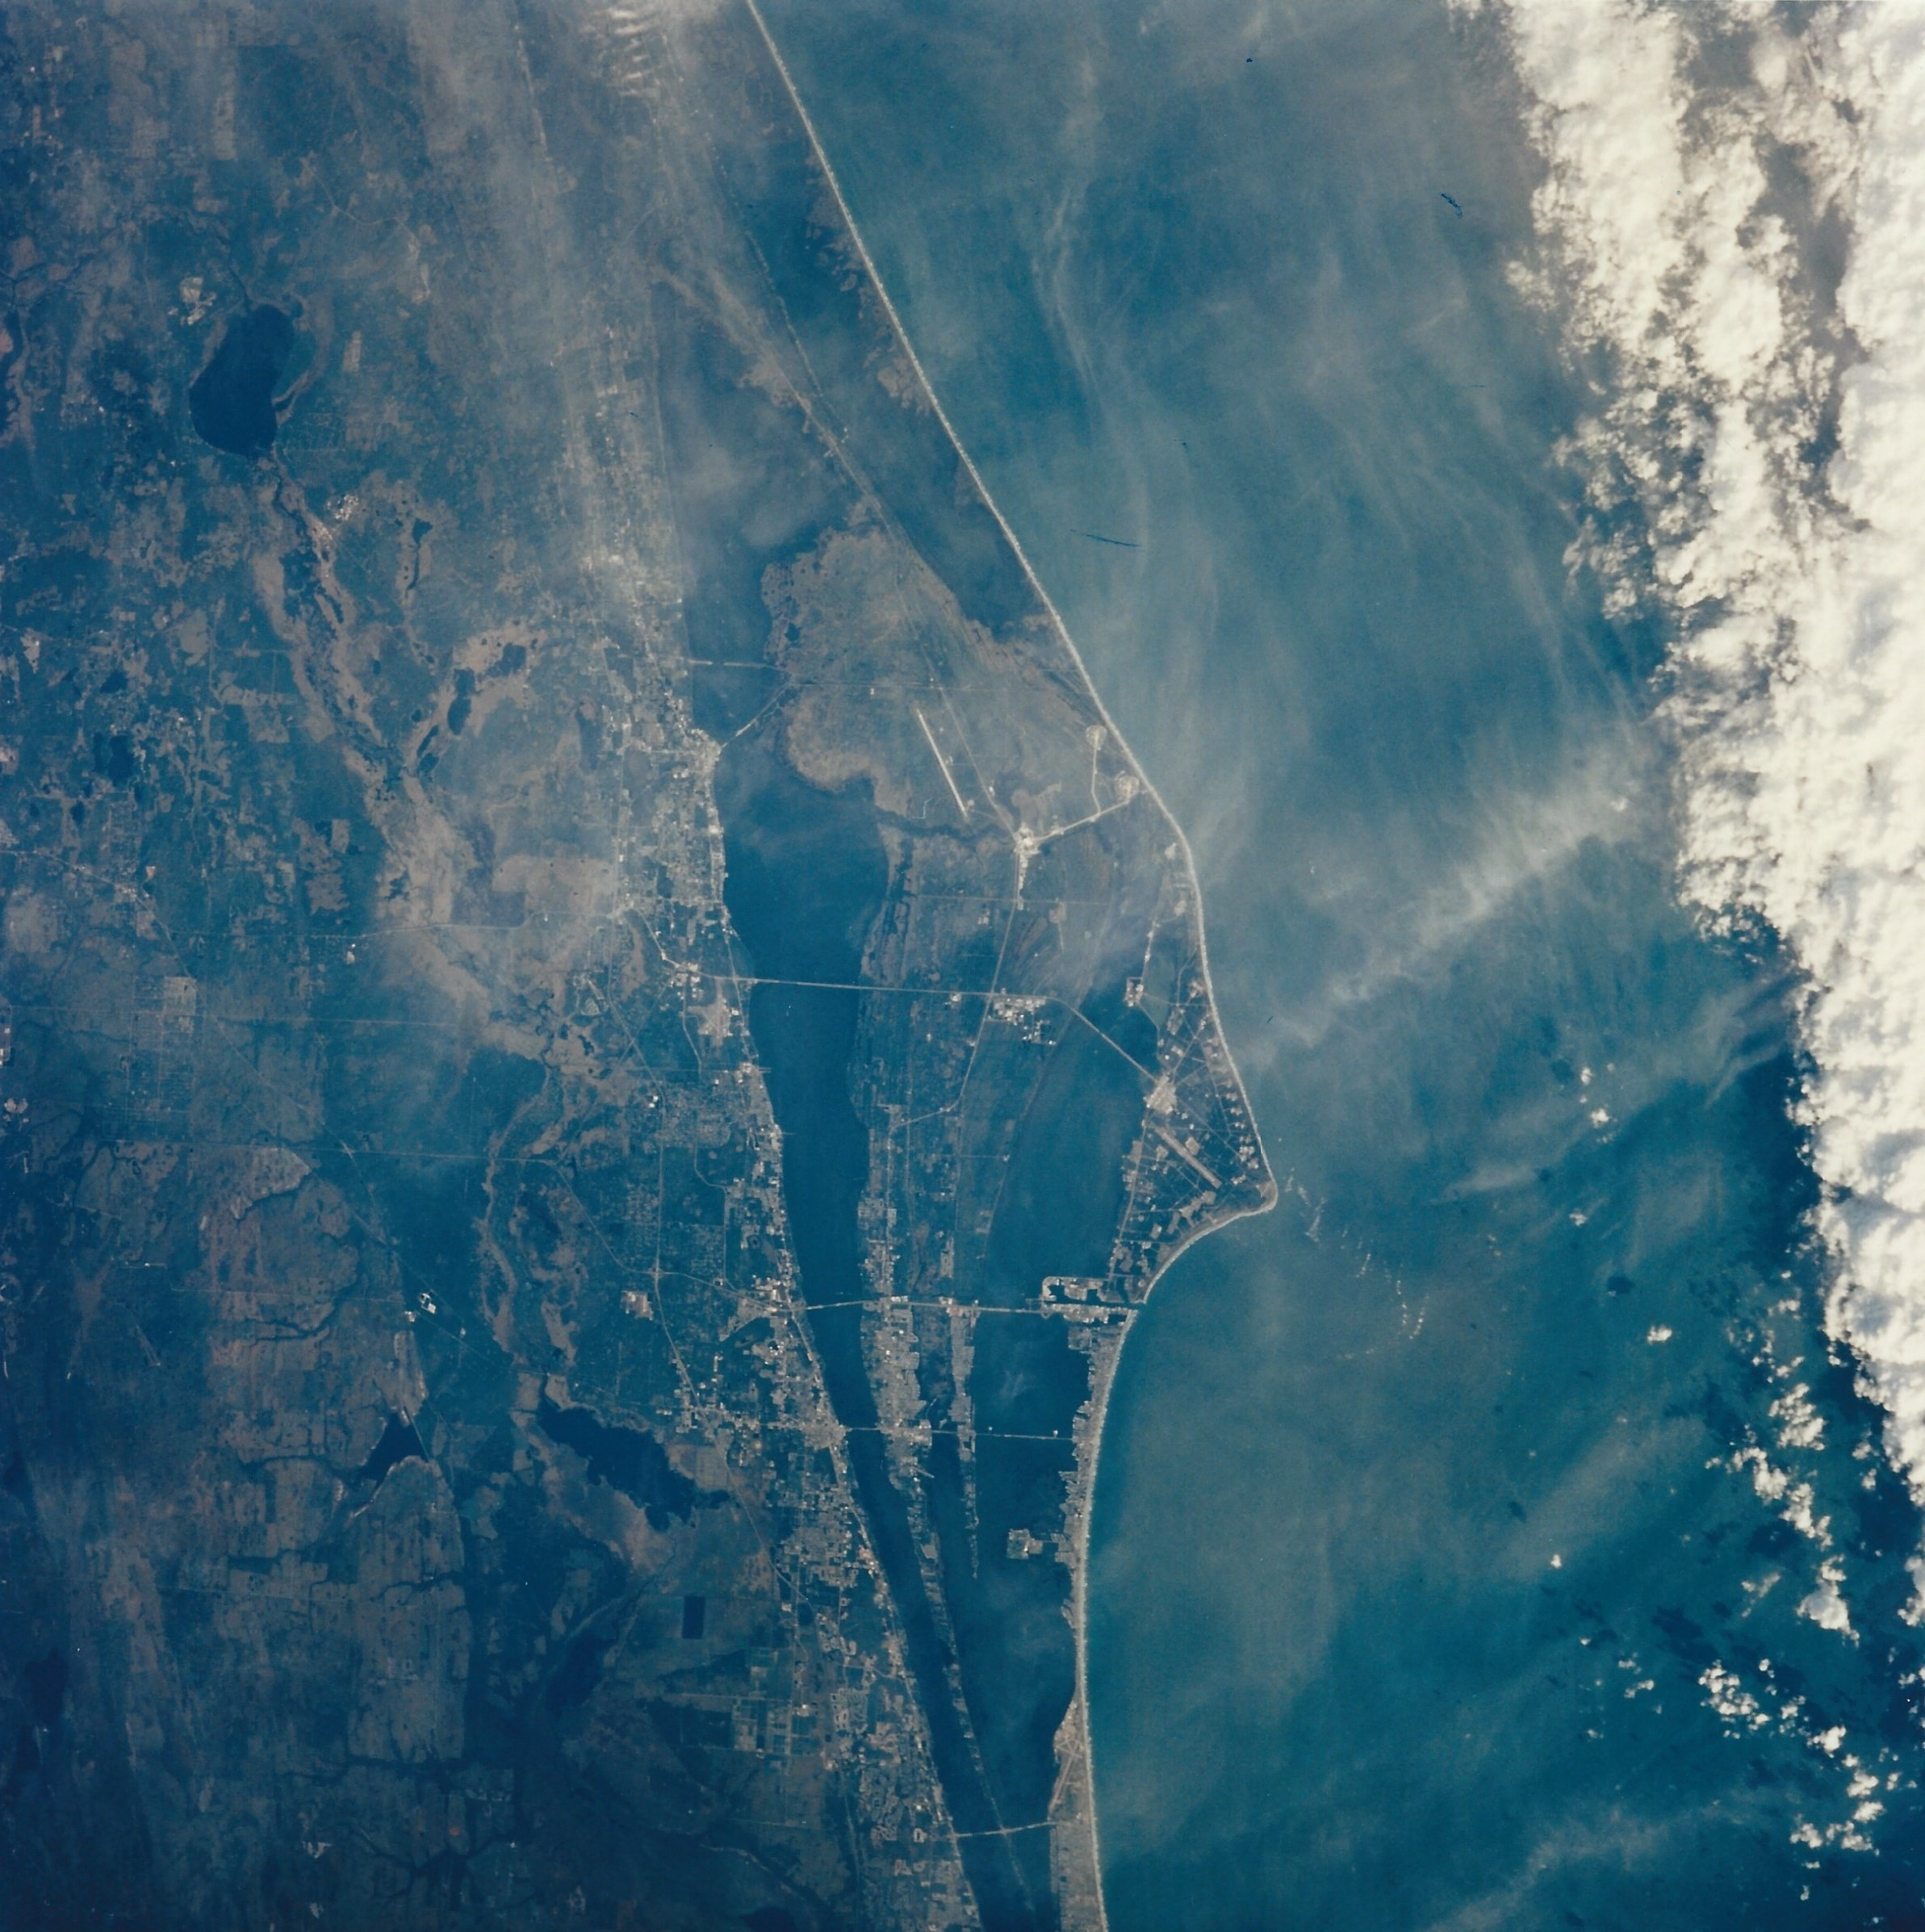 Cape Canaveral and Kennedy Space Center, from 185 nautical miles (NM), on Dec. 1, 1996. (NASA STS080-739-042)